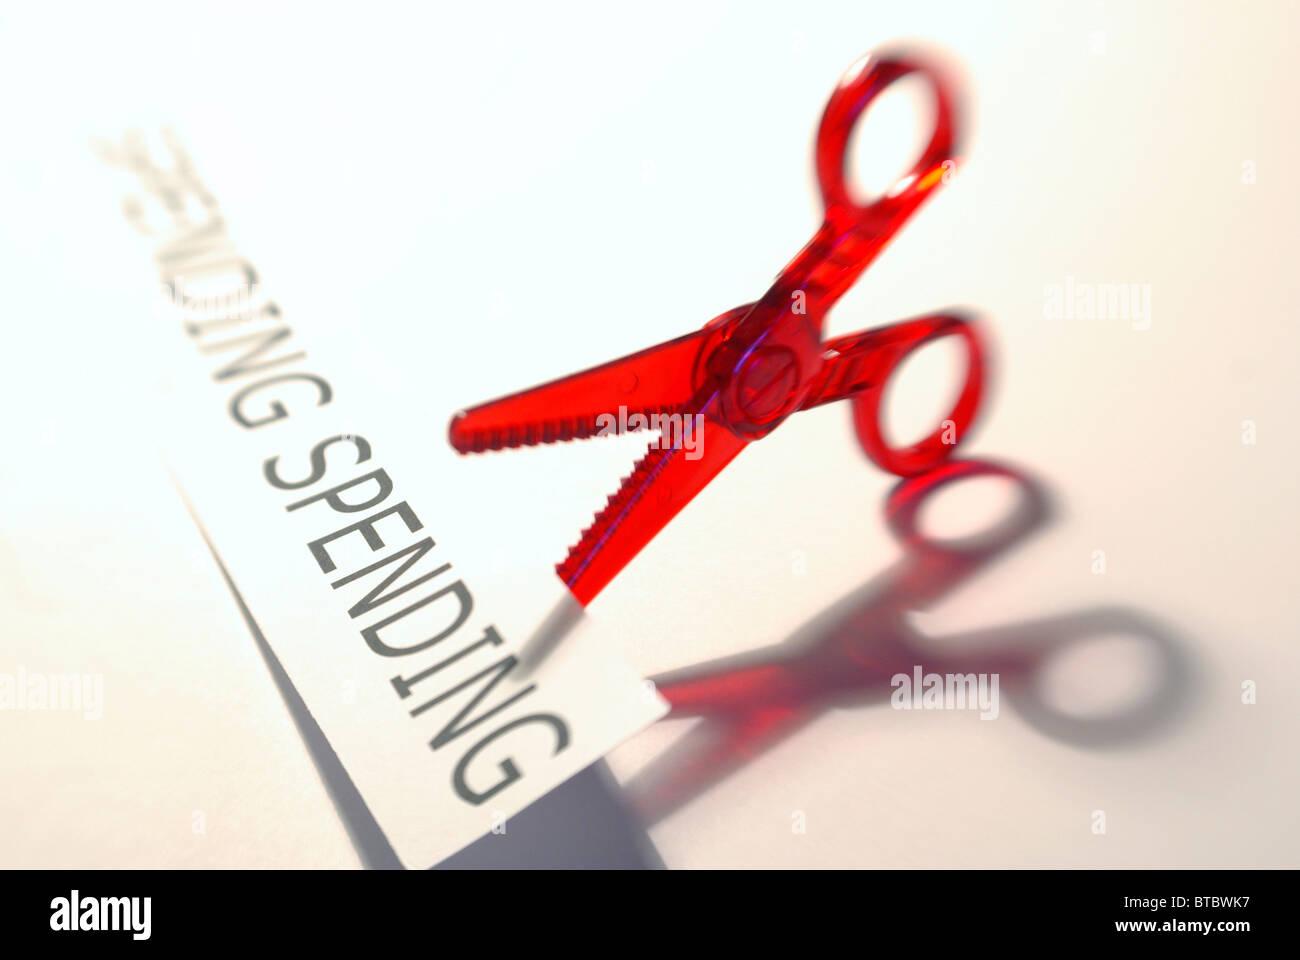 Brexit,Spending cuts concept featuring scissors and spending graphic - Stock Image